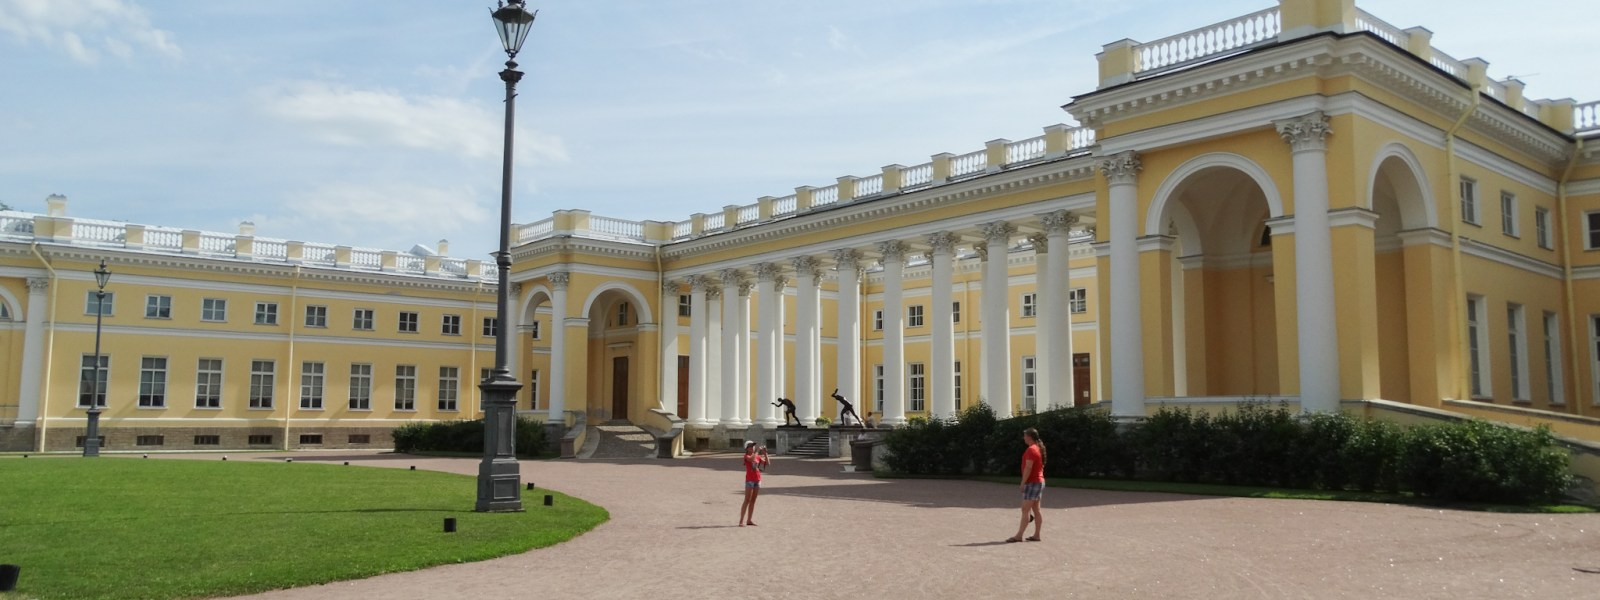 The Alexander Palace: Saint Petersburg off the beaten track